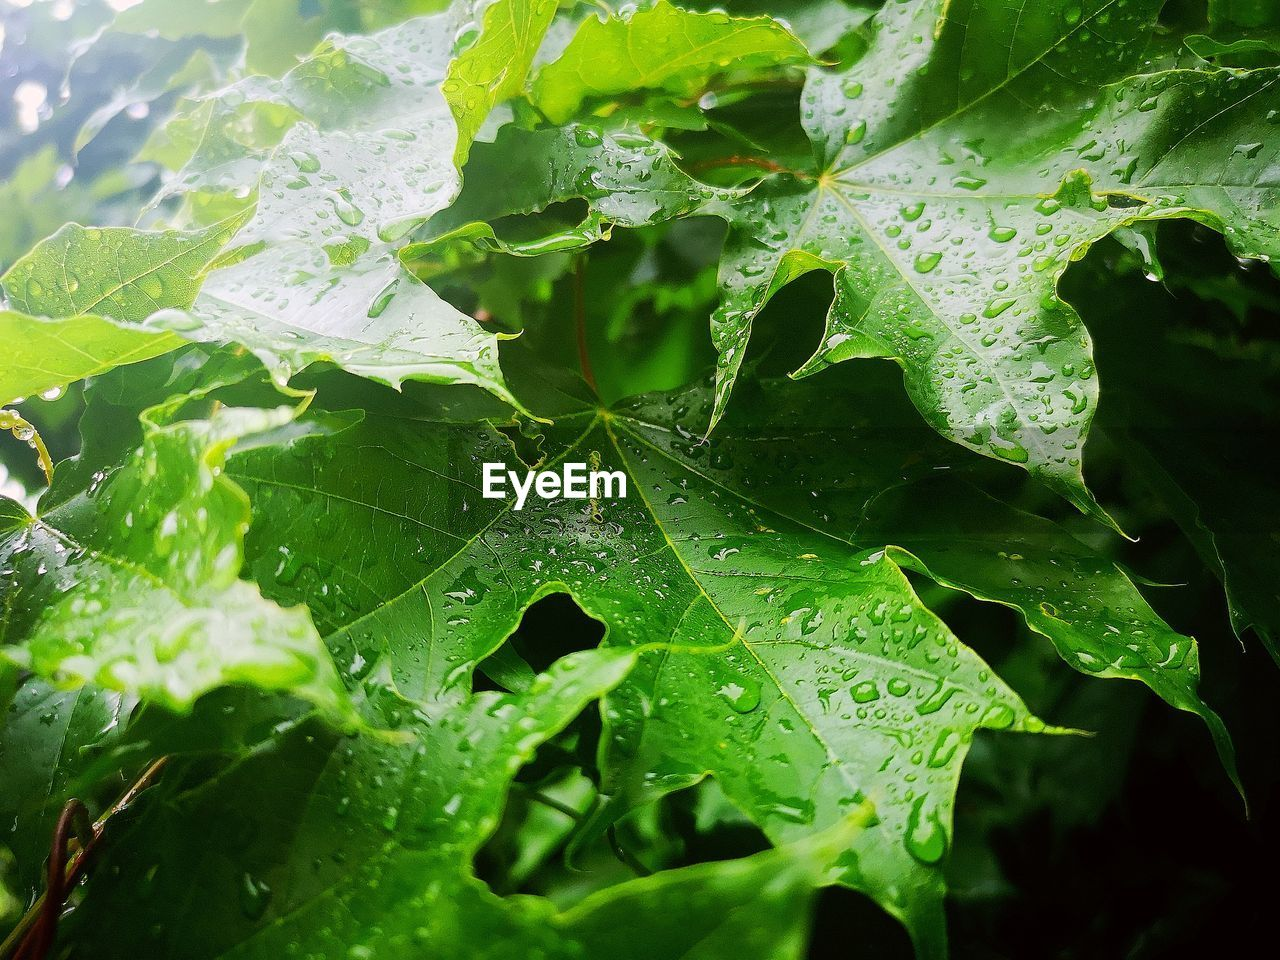 leaf, plant part, drop, water, green color, wet, growth, close-up, nature, plant, leaf vein, beauty in nature, no people, day, rain, leaves, outdoors, selective focus, raindrop, dew, rainy season, purity